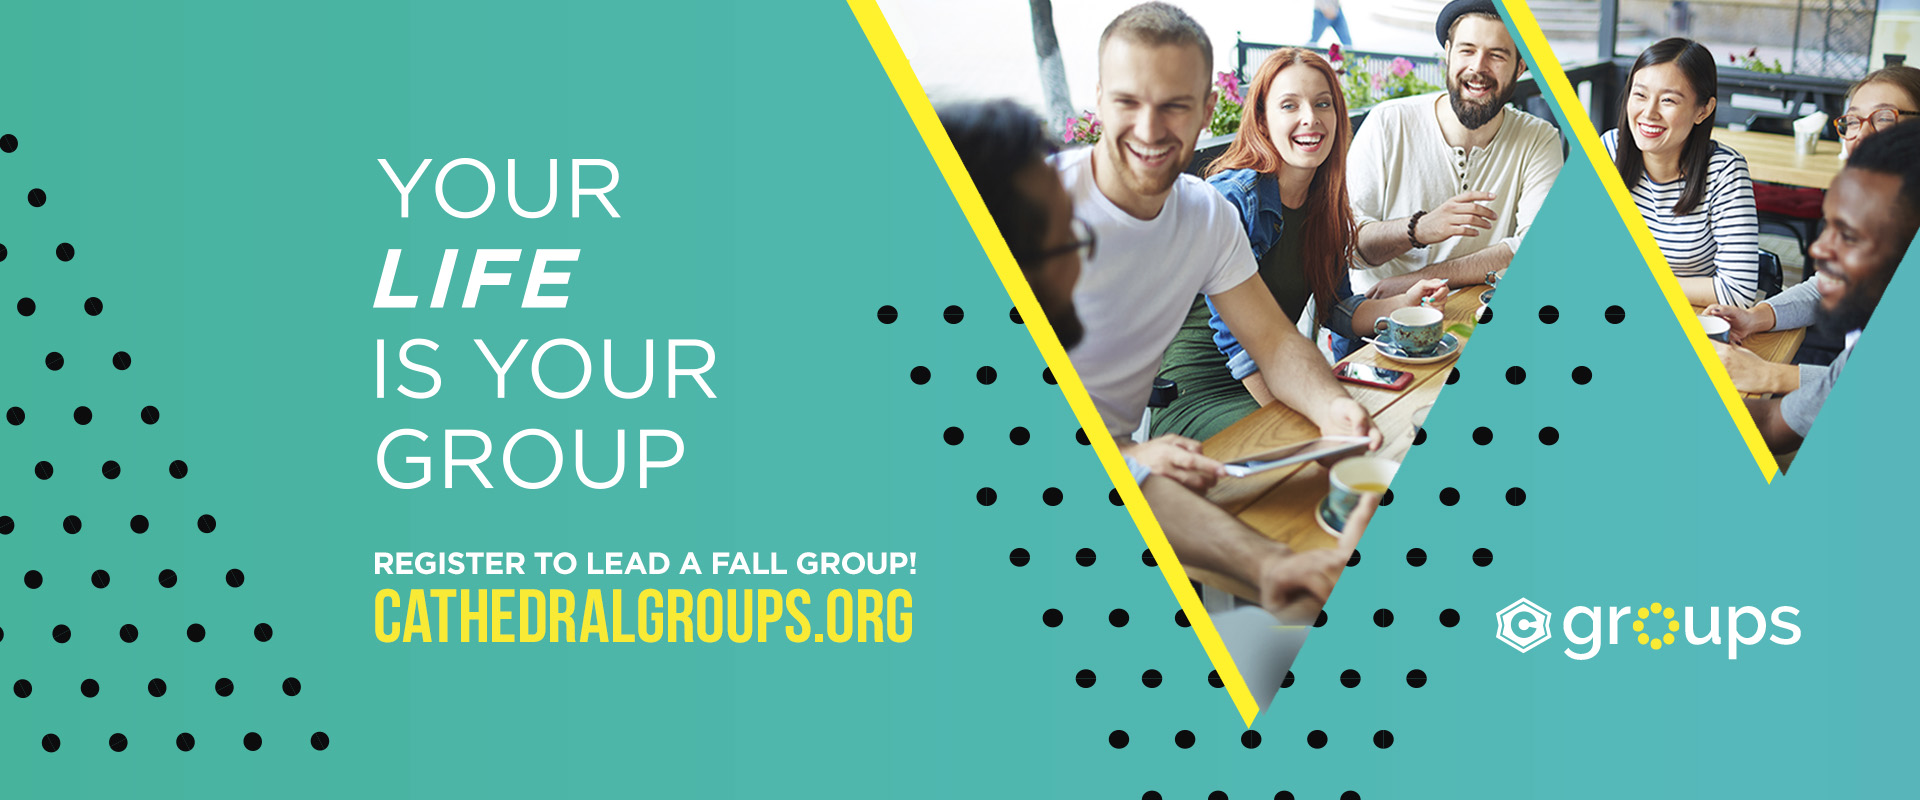 Fall Small Groups 2018 slide